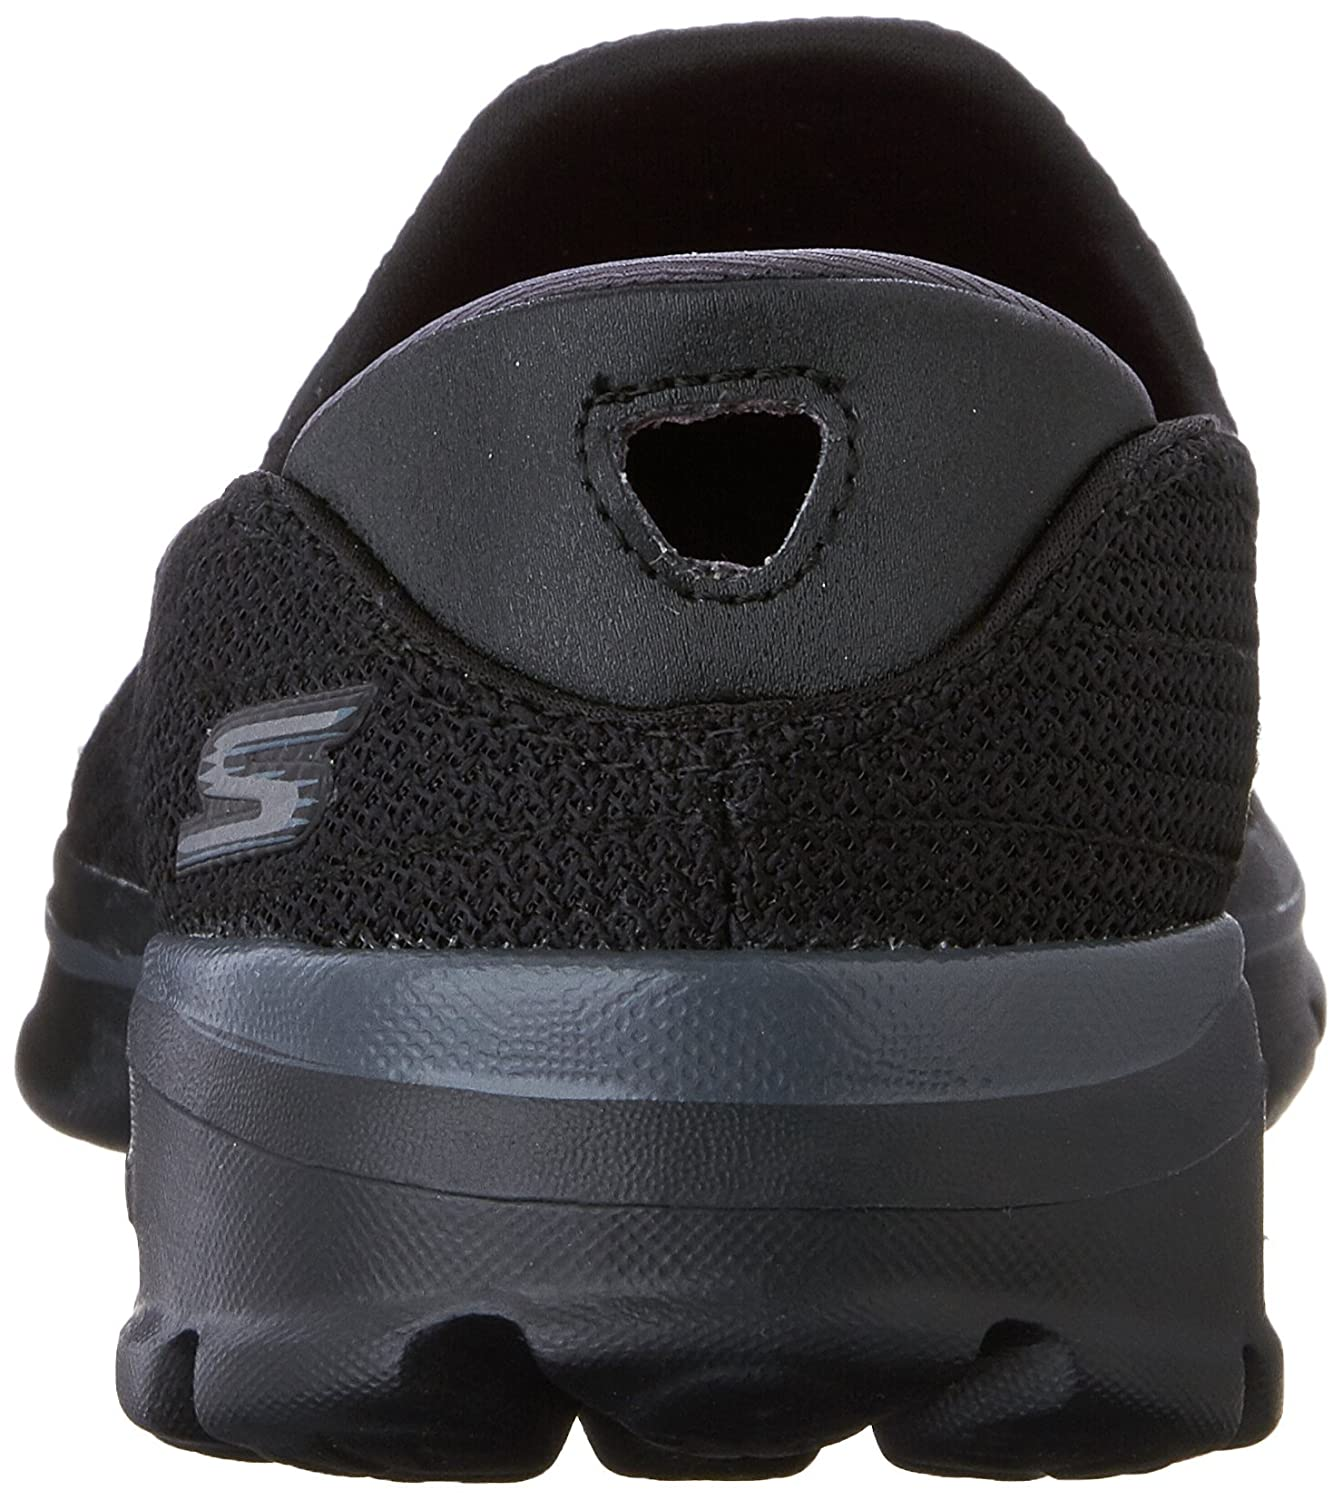 super popular eced6 58cb7 Amazon.com   Skechers Performance Women s Go Walk 3 Slip-On Walking Shoe    Walking